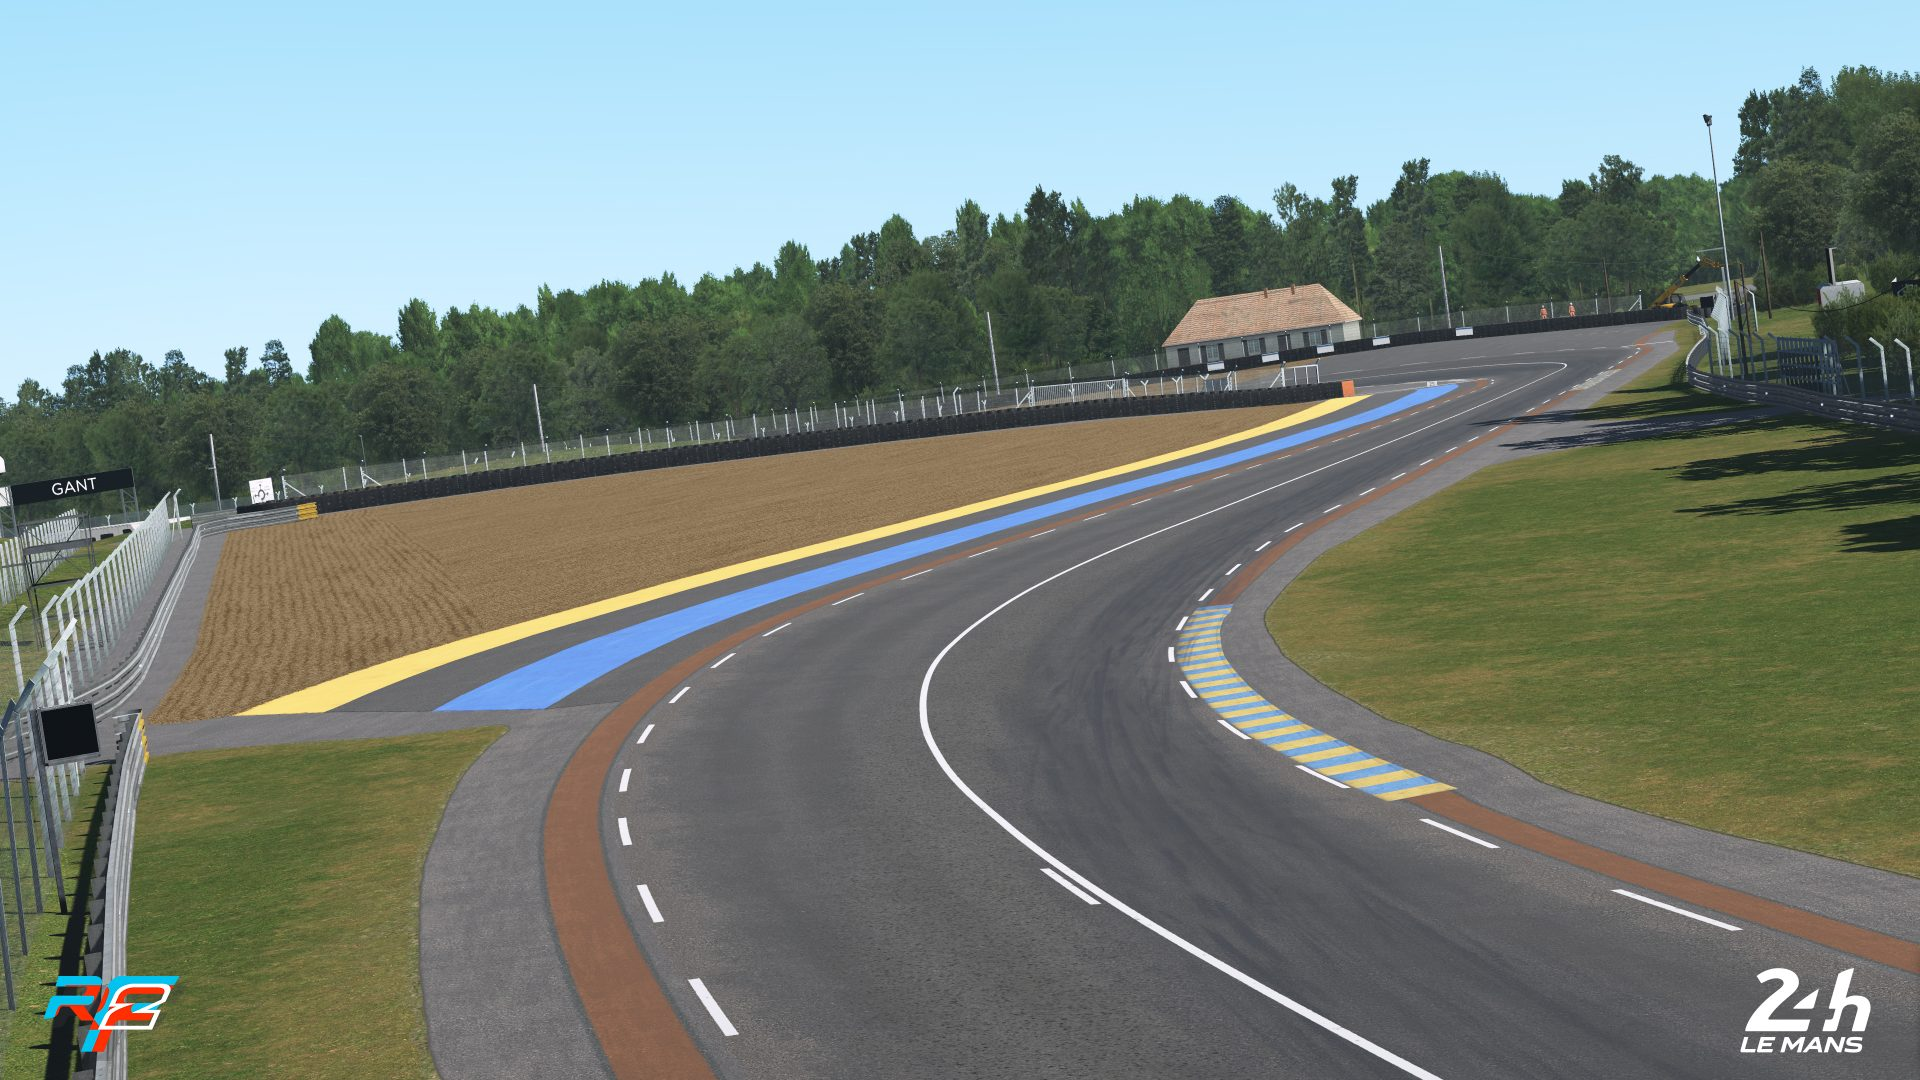 Le-Mans-track-guide-019-1920x1080.jpg